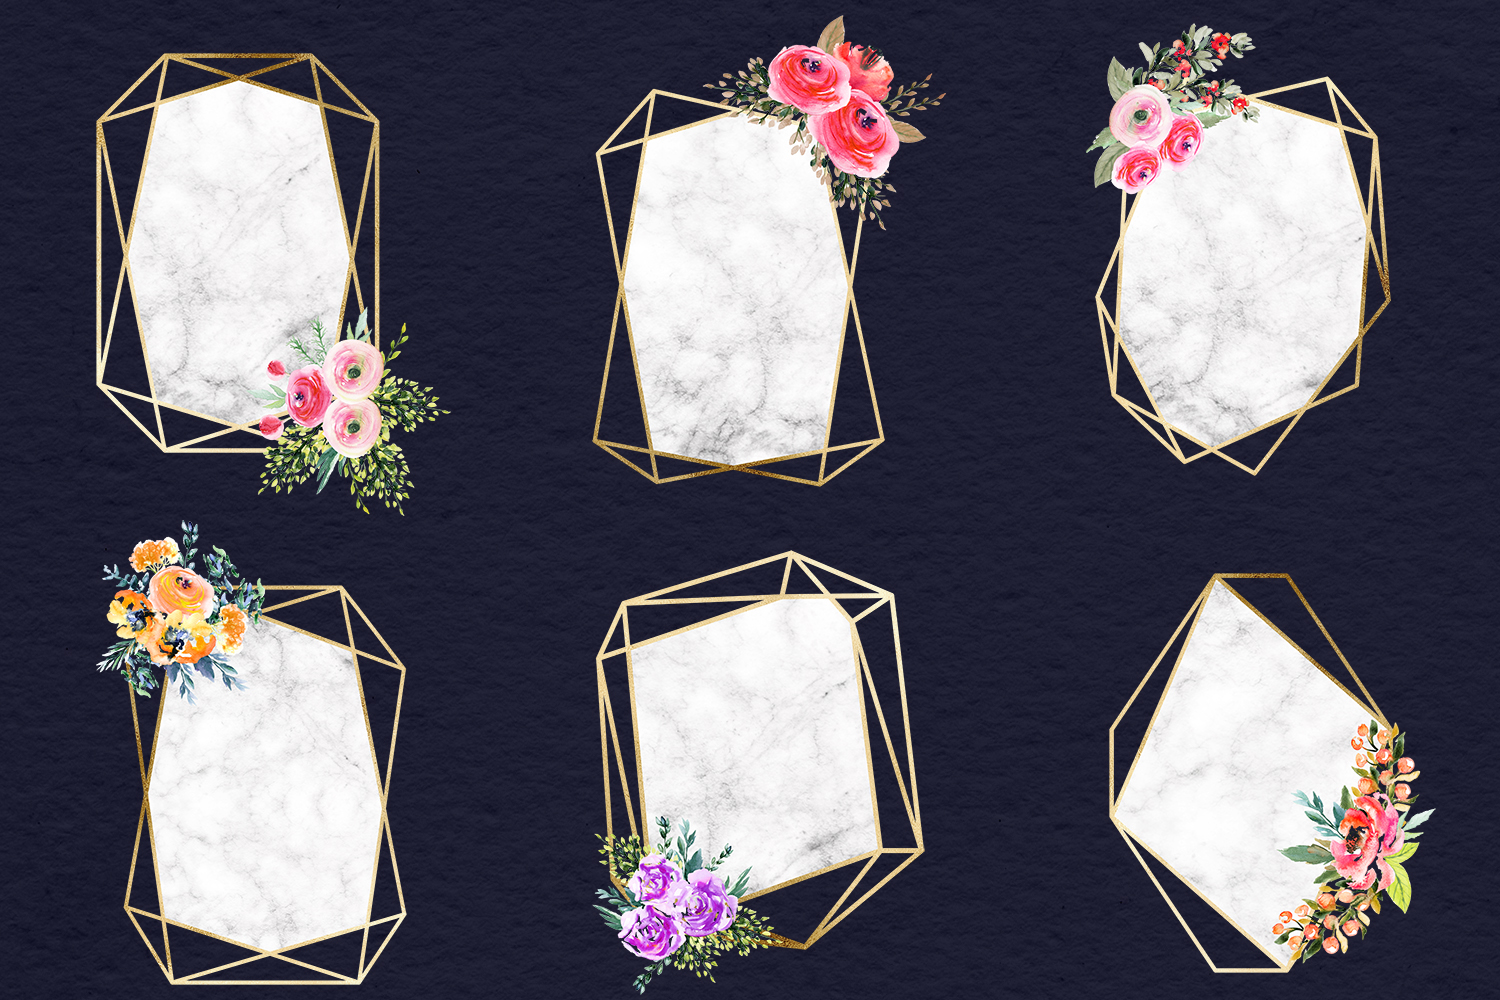 Watercolor Flowers & Gold Frames example image 3